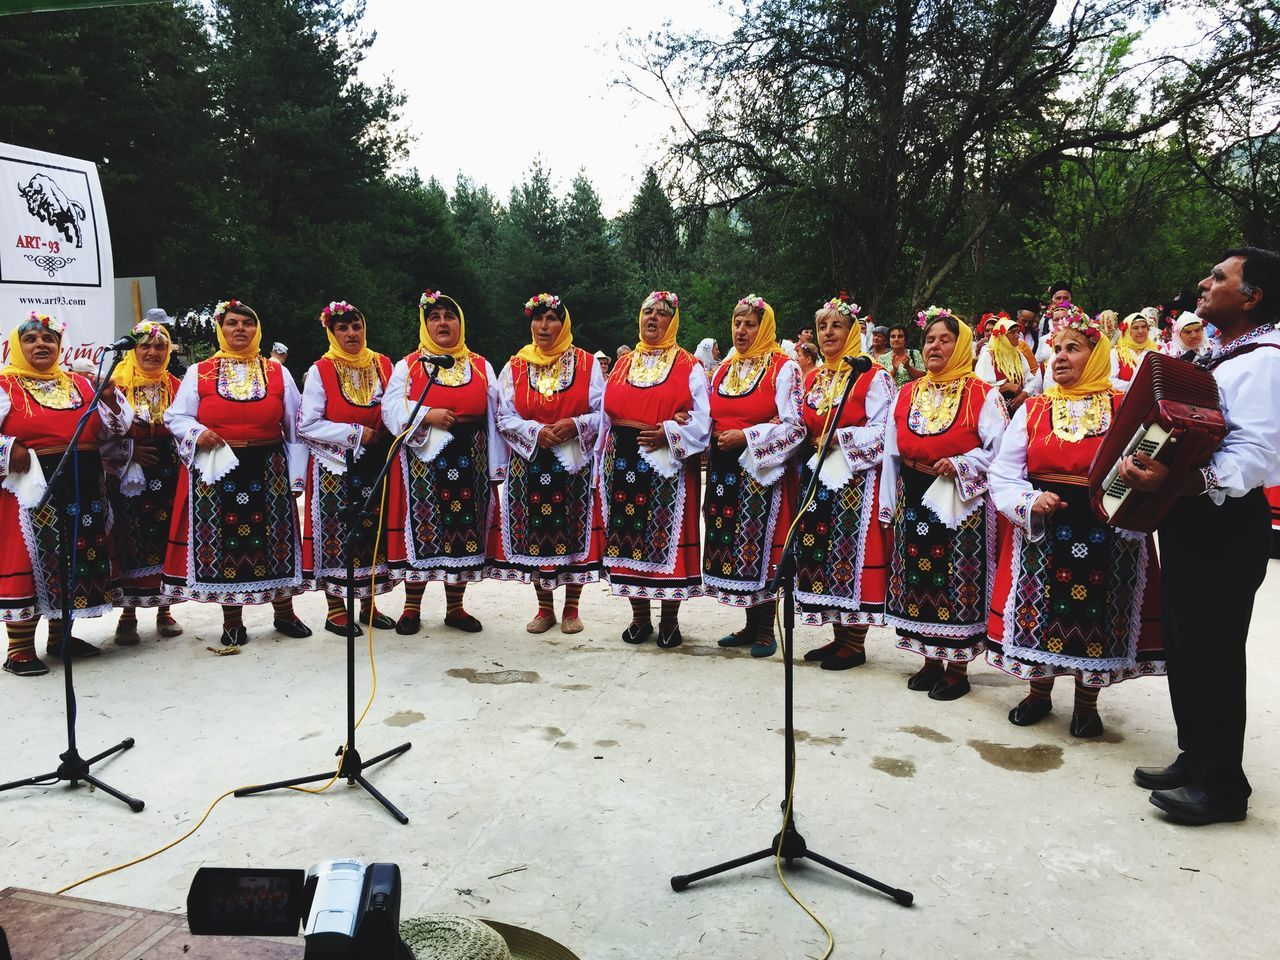 Koprivshtica Costumes Tradition Costume Folklore Bulgarian Traditions Bulgarian Costumes Bulgaria Bulgarian Folklore Full Length Large Group Of People Women Outdoors Real People People Uniform Adults Only Adult Teamwork Day Sports Uniform